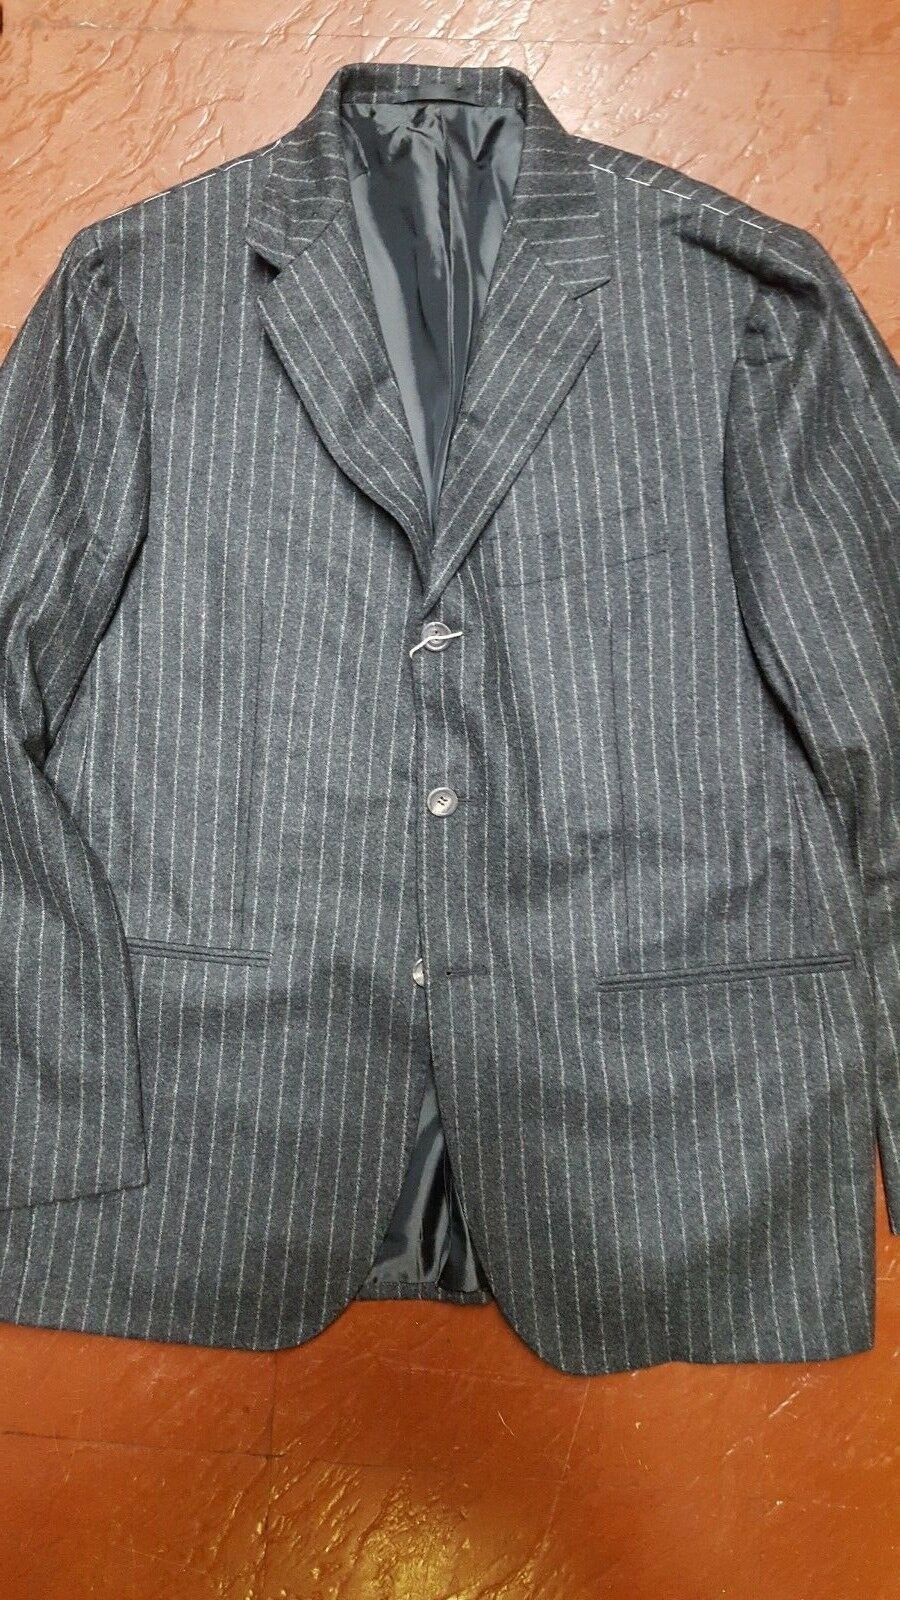 NWT 6000 SARTORIO BY KITON  FULL CANVAS CHALK STRIPED FLANNEL SUIT  42